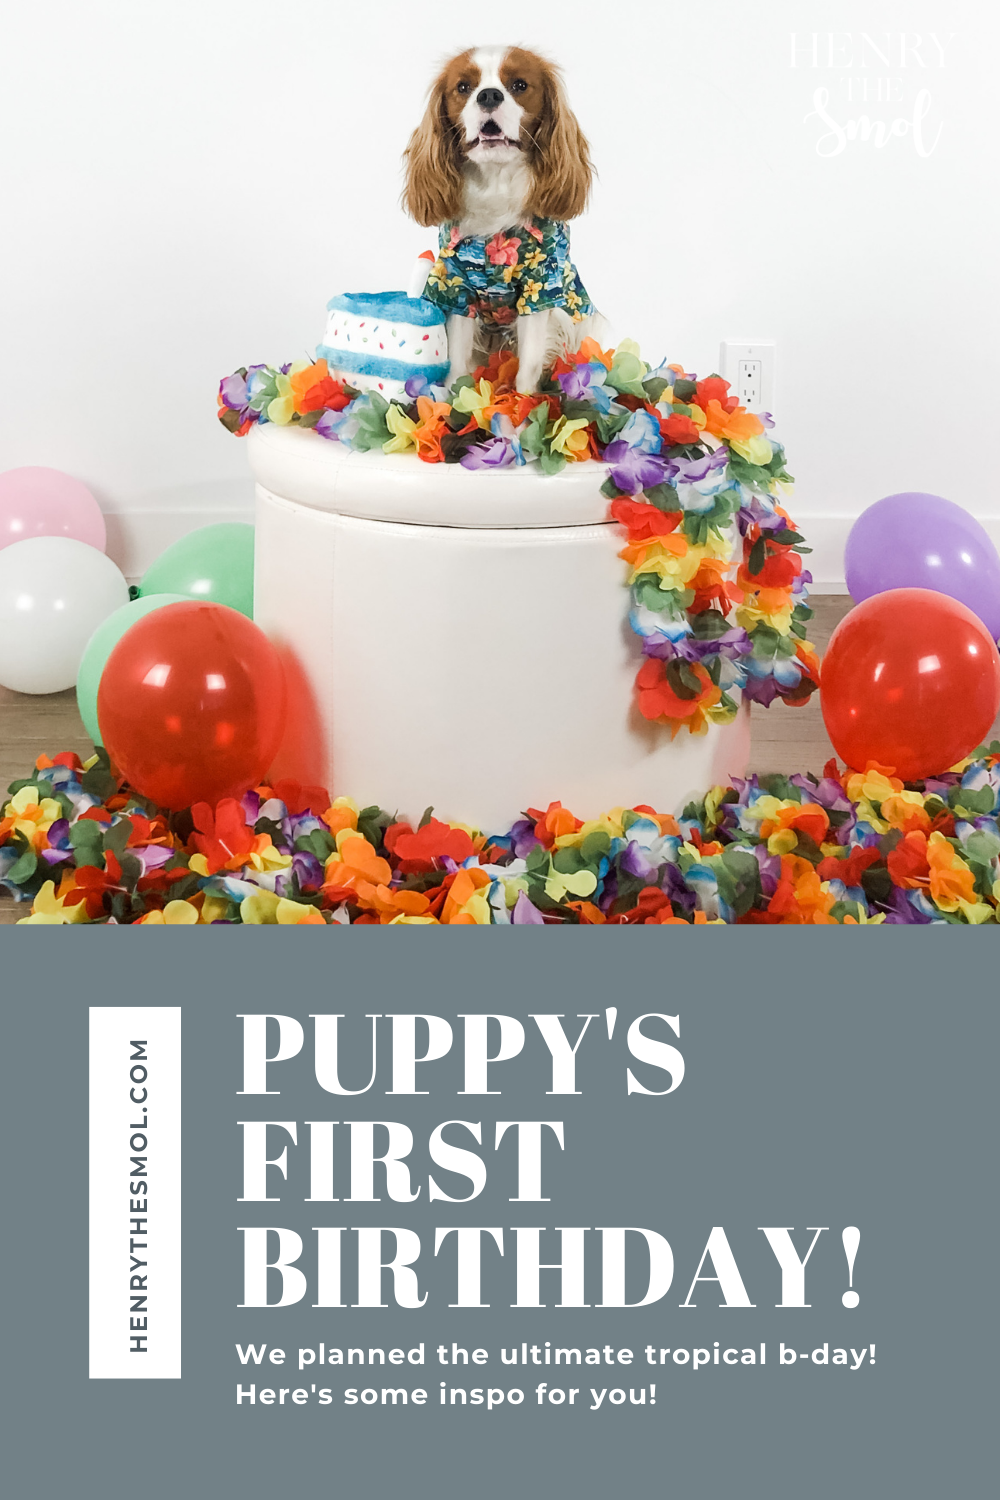 How to Throw a Birthday Party For Your Dog